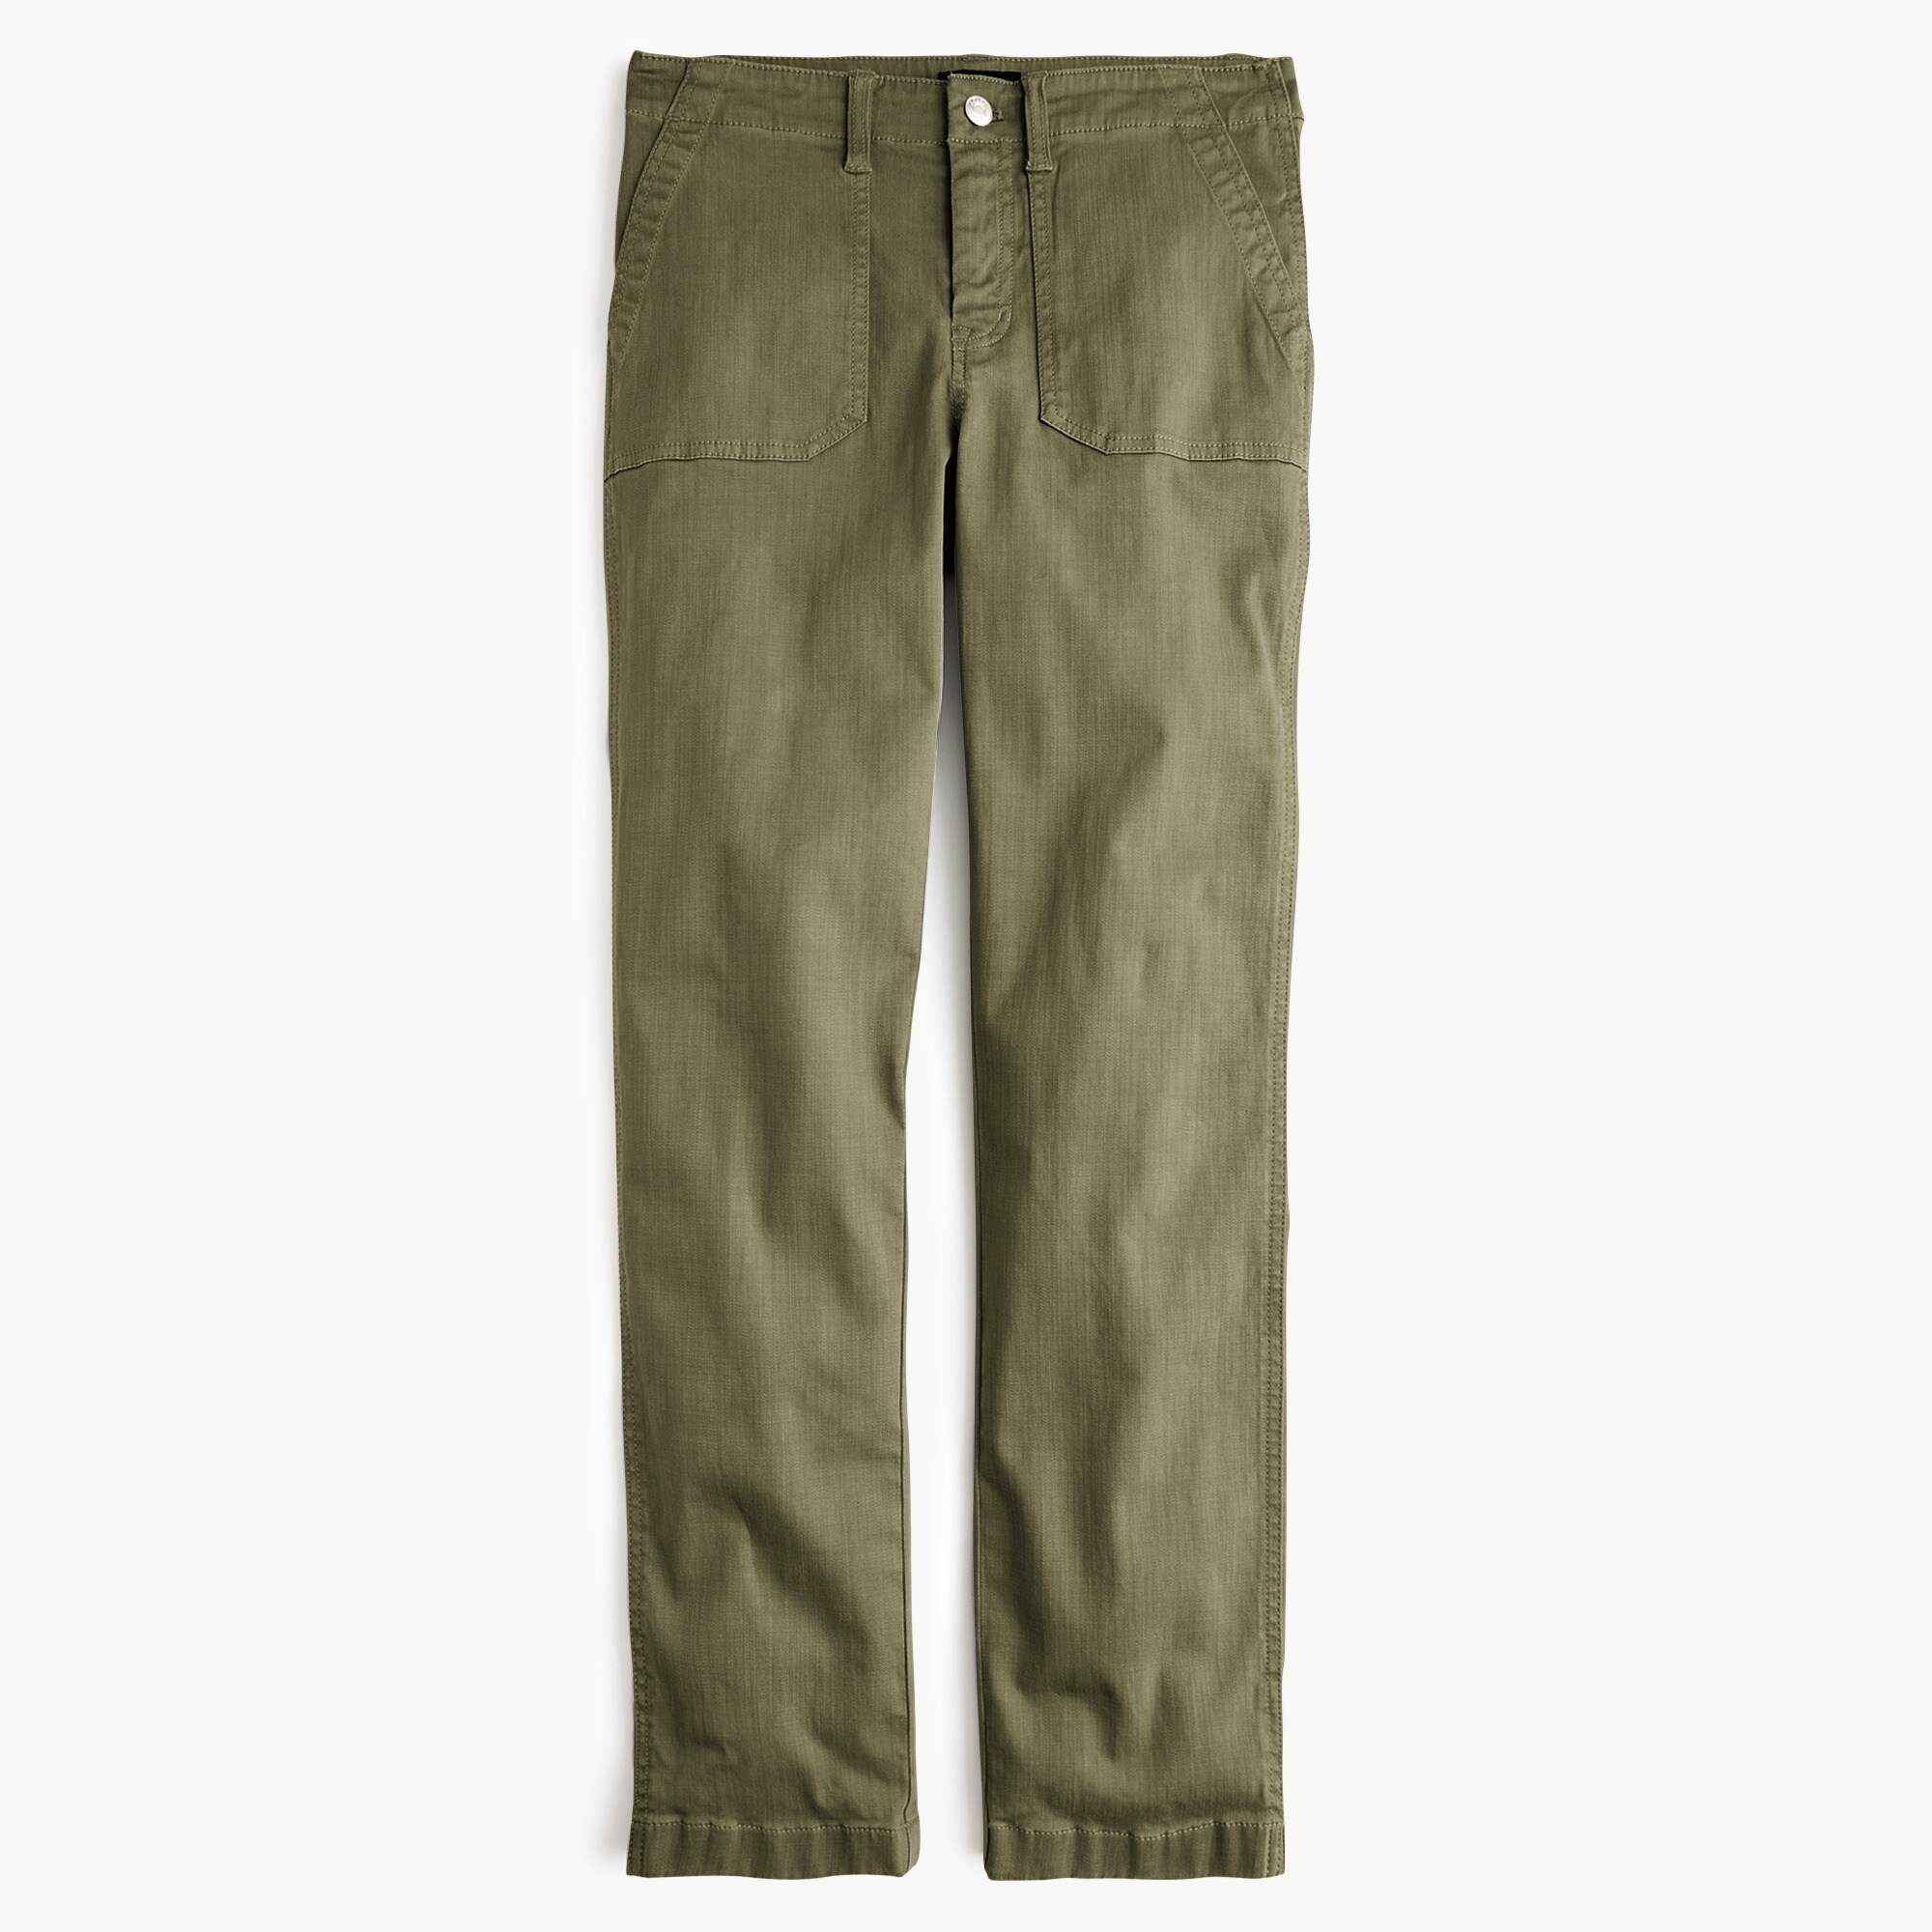 Image 7 for Vintage straight cargo pant in slub sateen